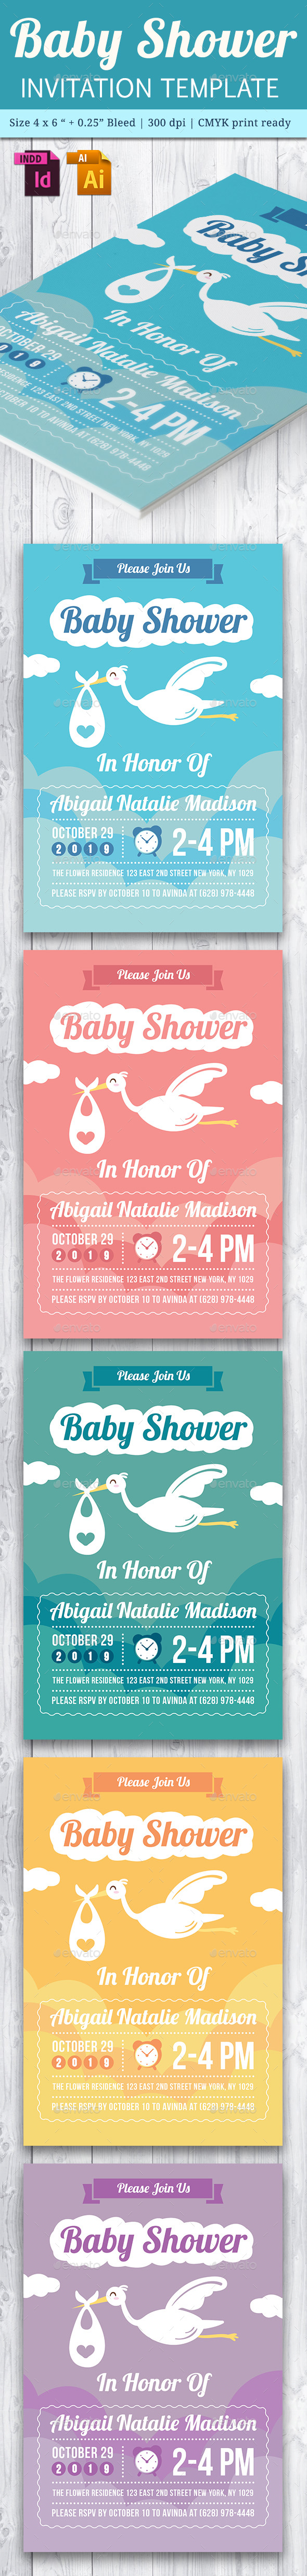 Baby Shower Template - Vol. 20 - Cards & Invites Print Templates